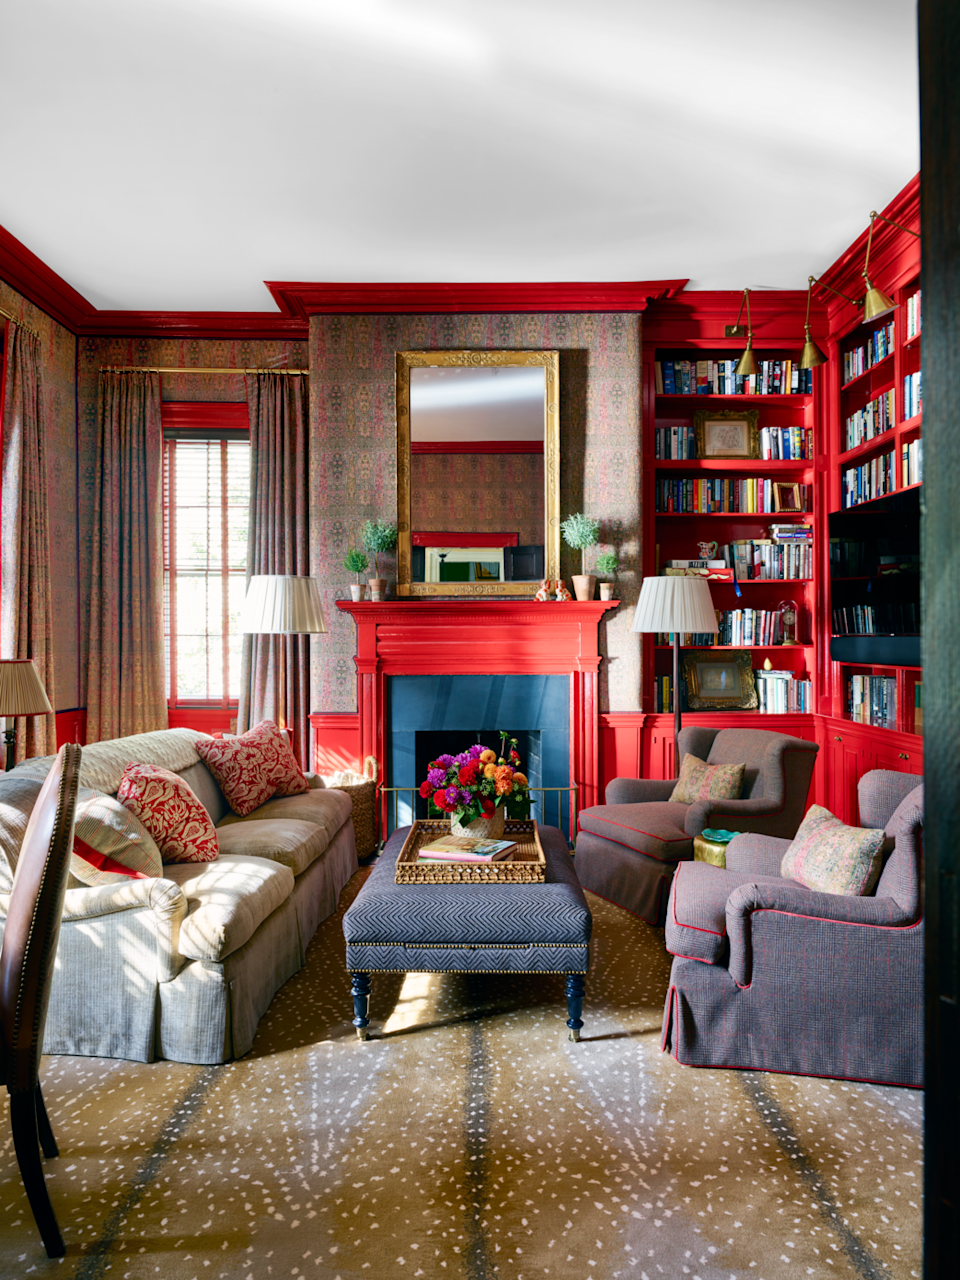 """<p>""""Next year, I believe we'll continue to see the resurgence of rich, saturated hues. From jewel tones, like ruby and sapphire, to earthy shades, like cypress and saffron, designers and homeowners won't shy away from interiors lavishly swathed in color."""" – <a href=""""https://marieflanigan.com/"""" rel=""""nofollow noopener"""" target=""""_blank"""" data-ylk=""""slk:Marie Flanigan"""" class=""""link rapid-noclick-resp"""">Marie Flanigan </a></p><p>Here, designer <a href=""""https://branca.com/"""" rel=""""nofollow noopener"""" target=""""_blank"""" data-ylk=""""slk:Alessandra Branca"""" class=""""link rapid-noclick-resp"""">Alessandra Branca</a> marries a creamy, lively red with a pop of blue from the fireplace and a mix of muted colors to create an energizing yet cozy space for cocktails and conversation. </p>"""